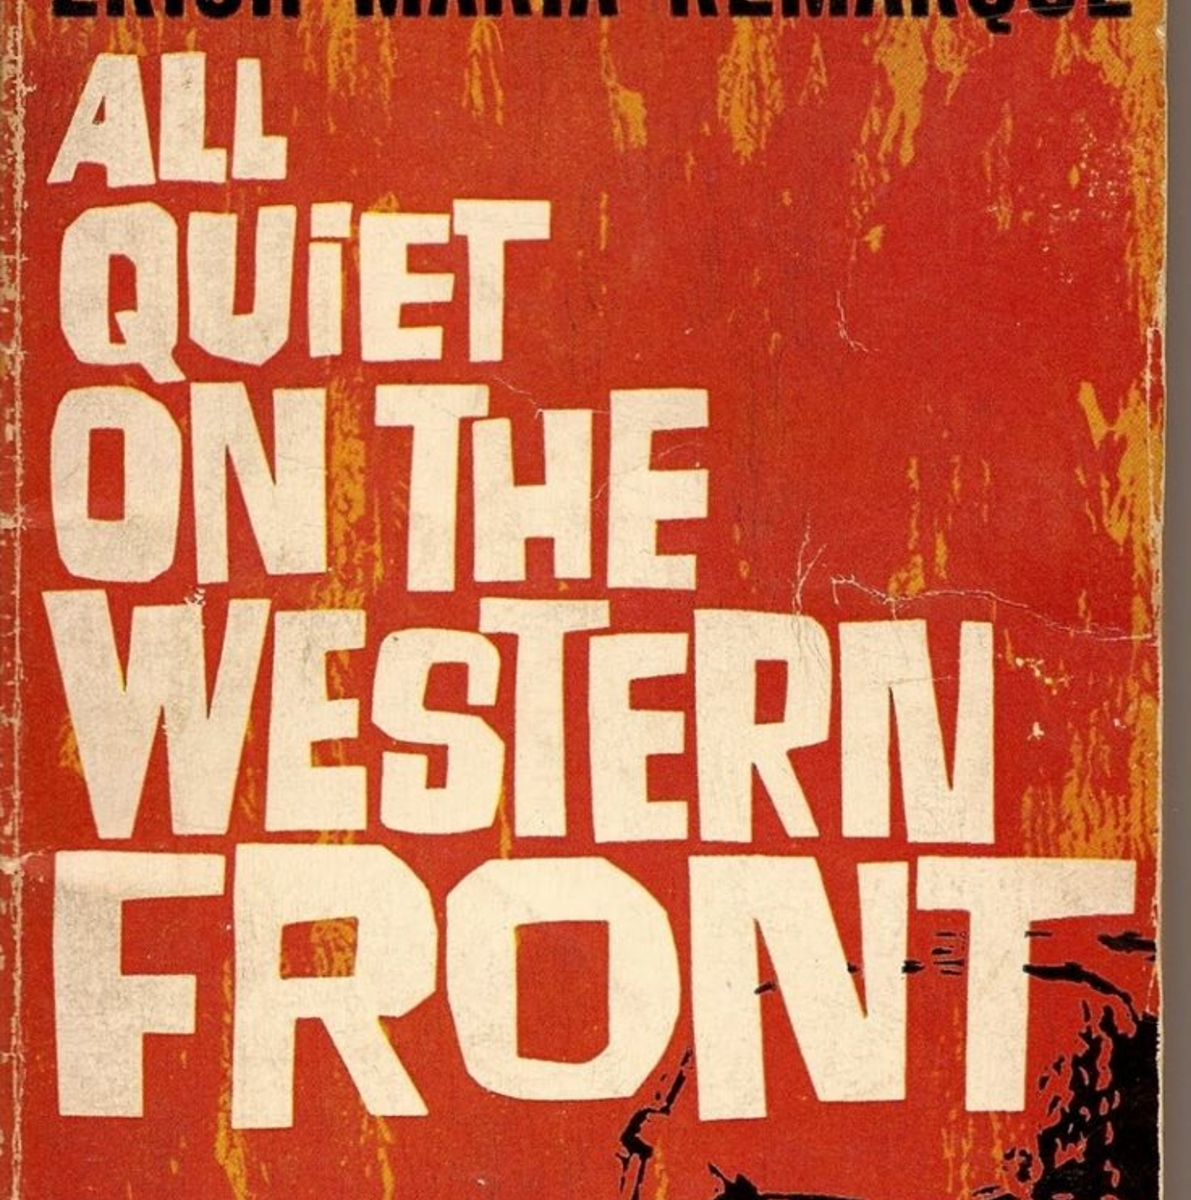 a book review of all quiet on the western front by erich maria remarque Buy all quiet on the western front new ed by erich maria remarque (isbn: 8601300080116) from amazon's book store everyday low prices and free delivery on eligible orders.